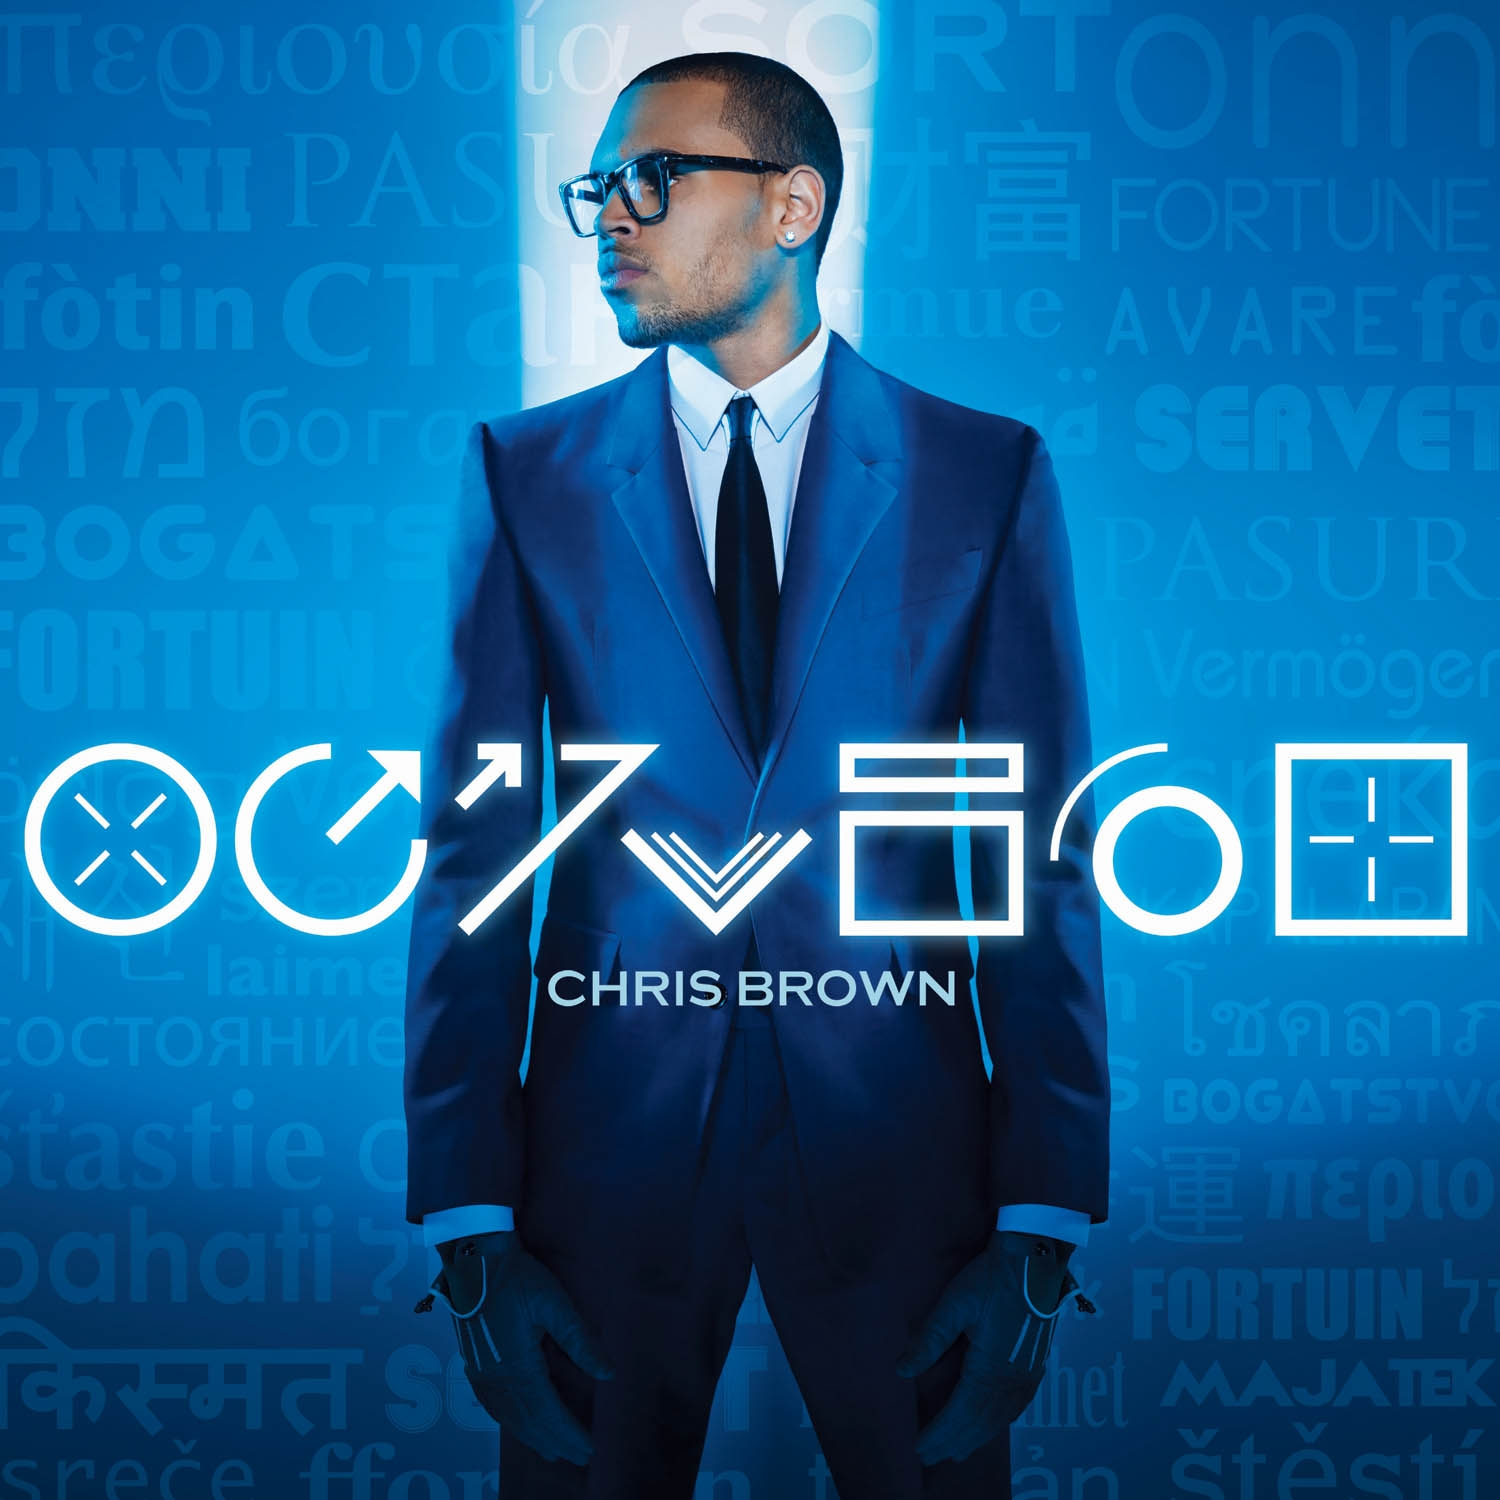 chris brown turn up the music - photo #9